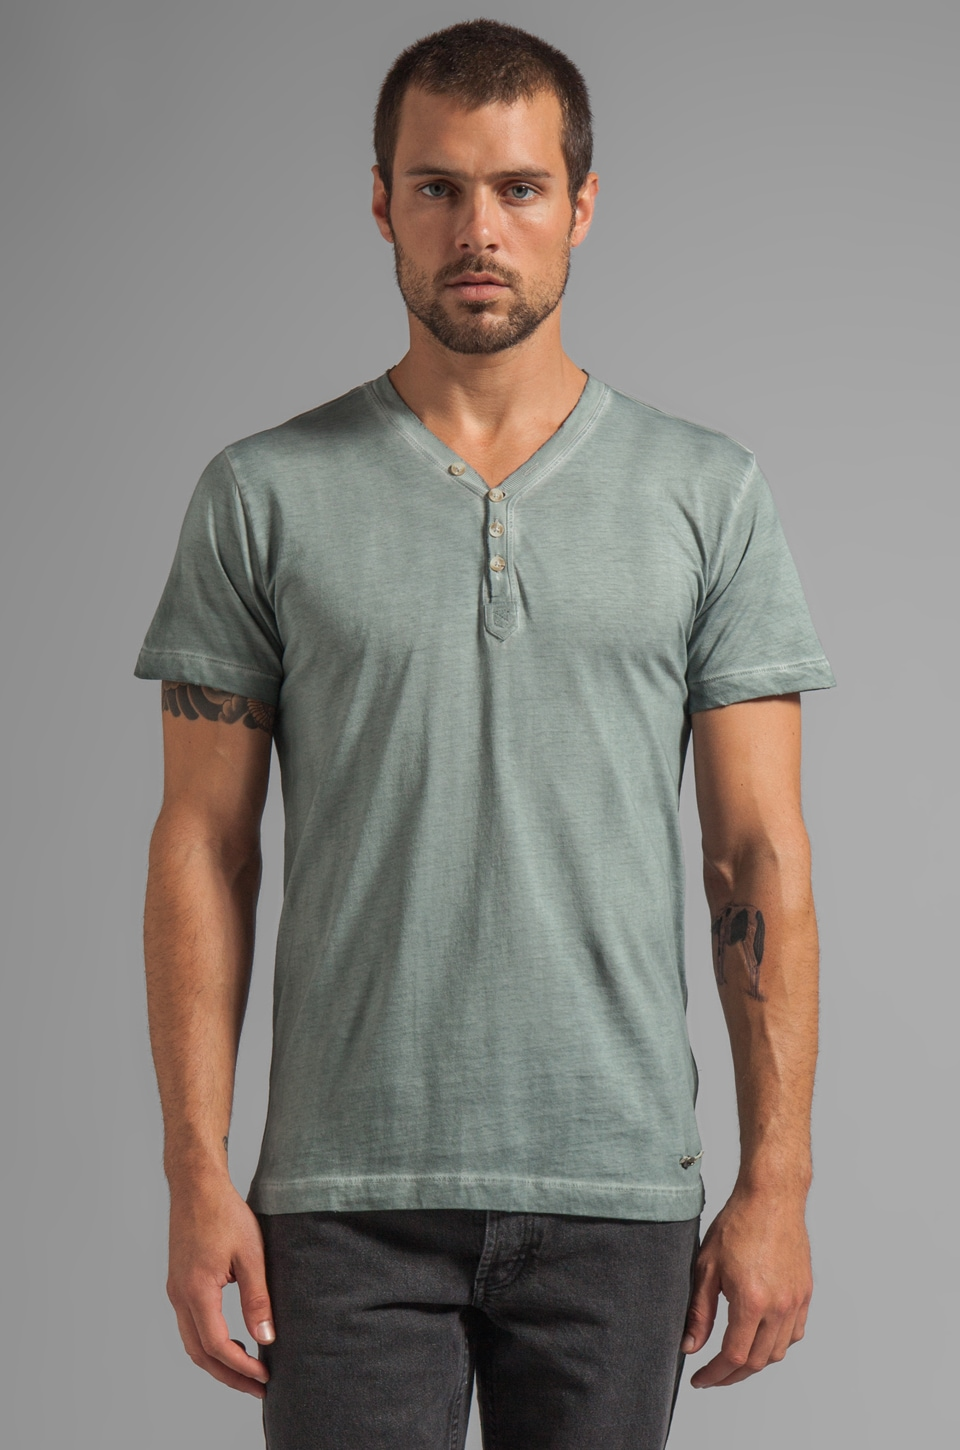 Diesel Malaya Tee in Light Grey